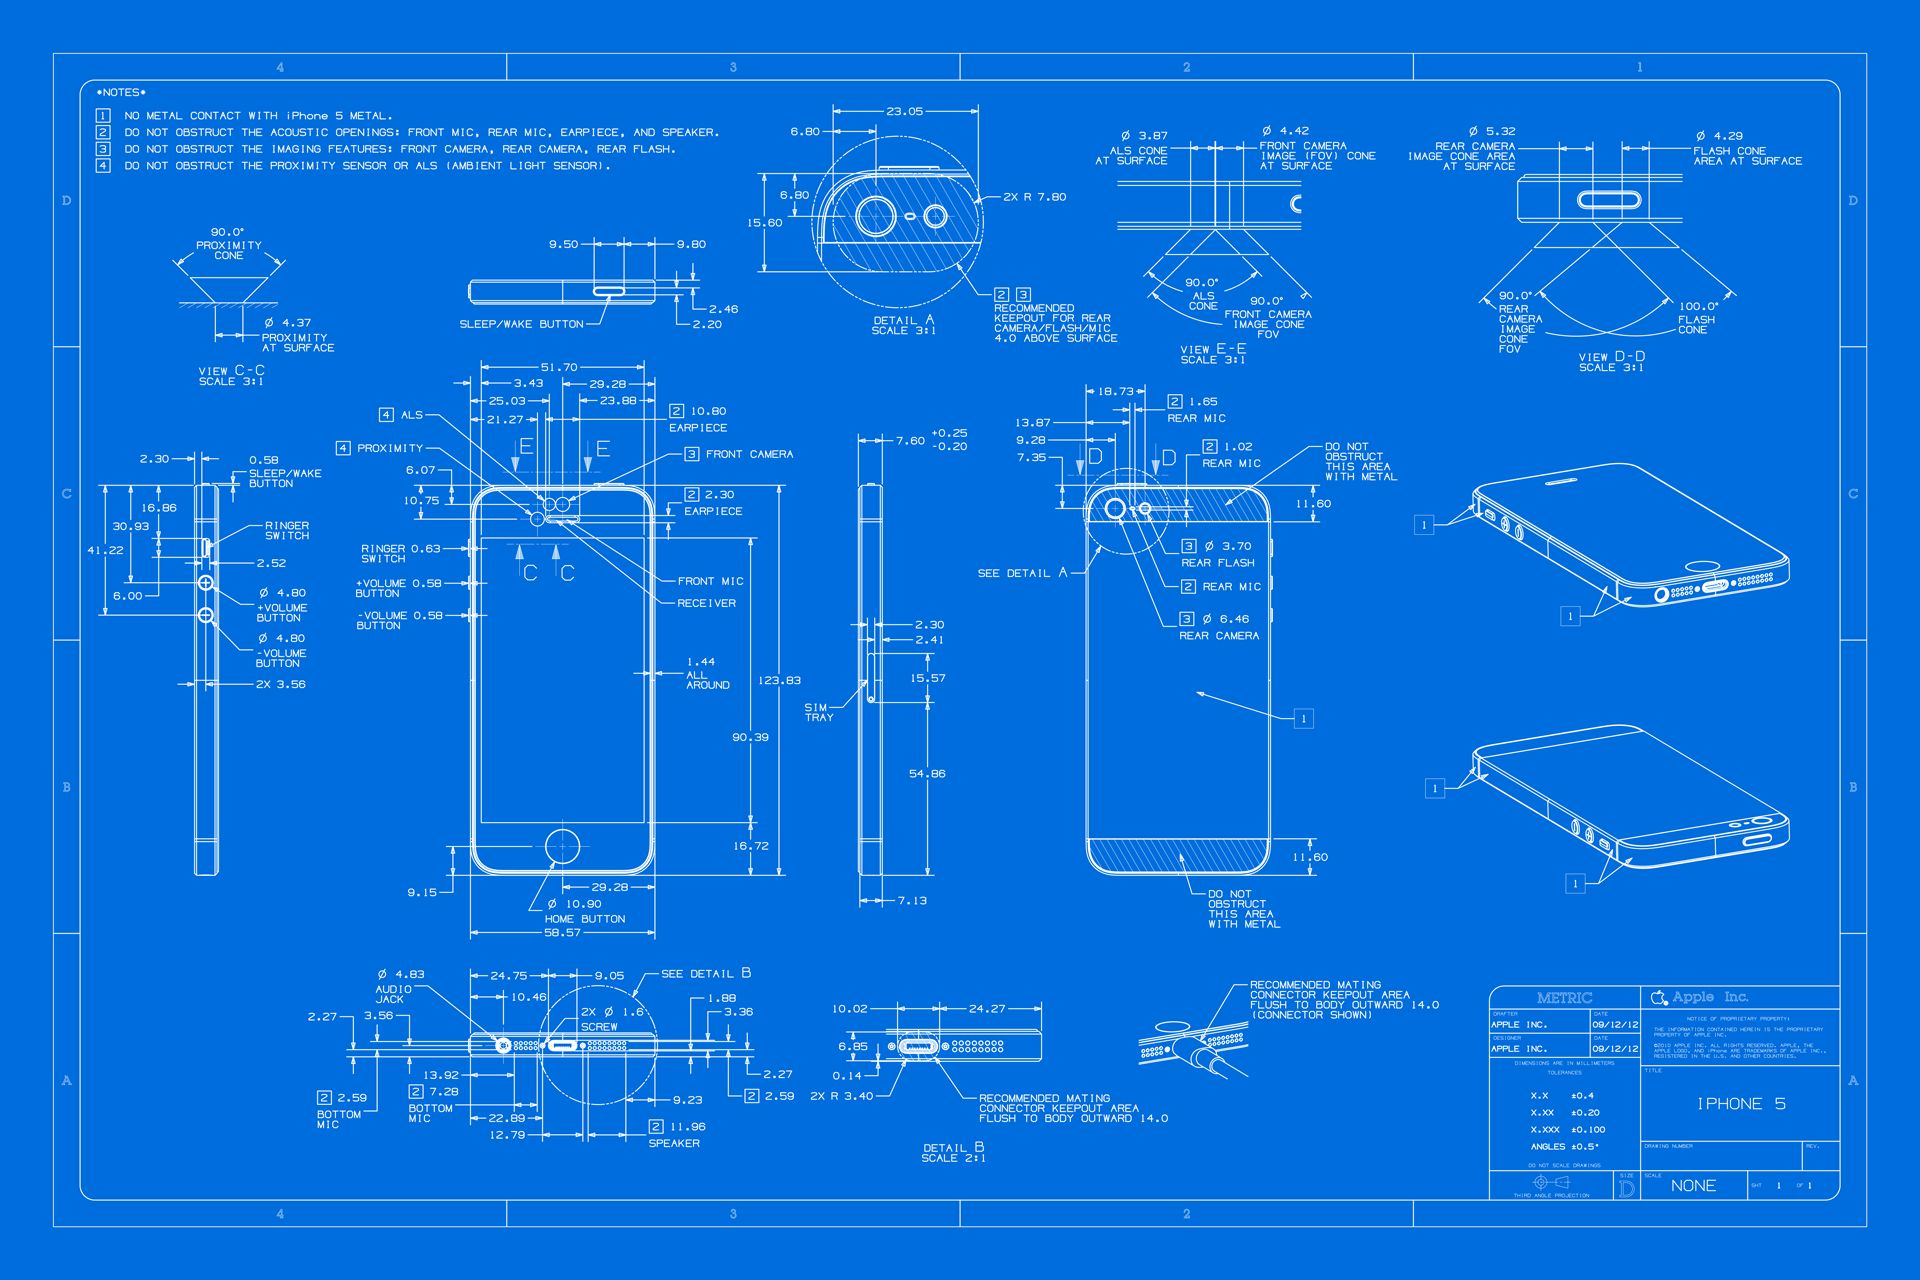 Iphone 5s blueprints iphone sketches pinterest iphone 5s malvernweather Gallery